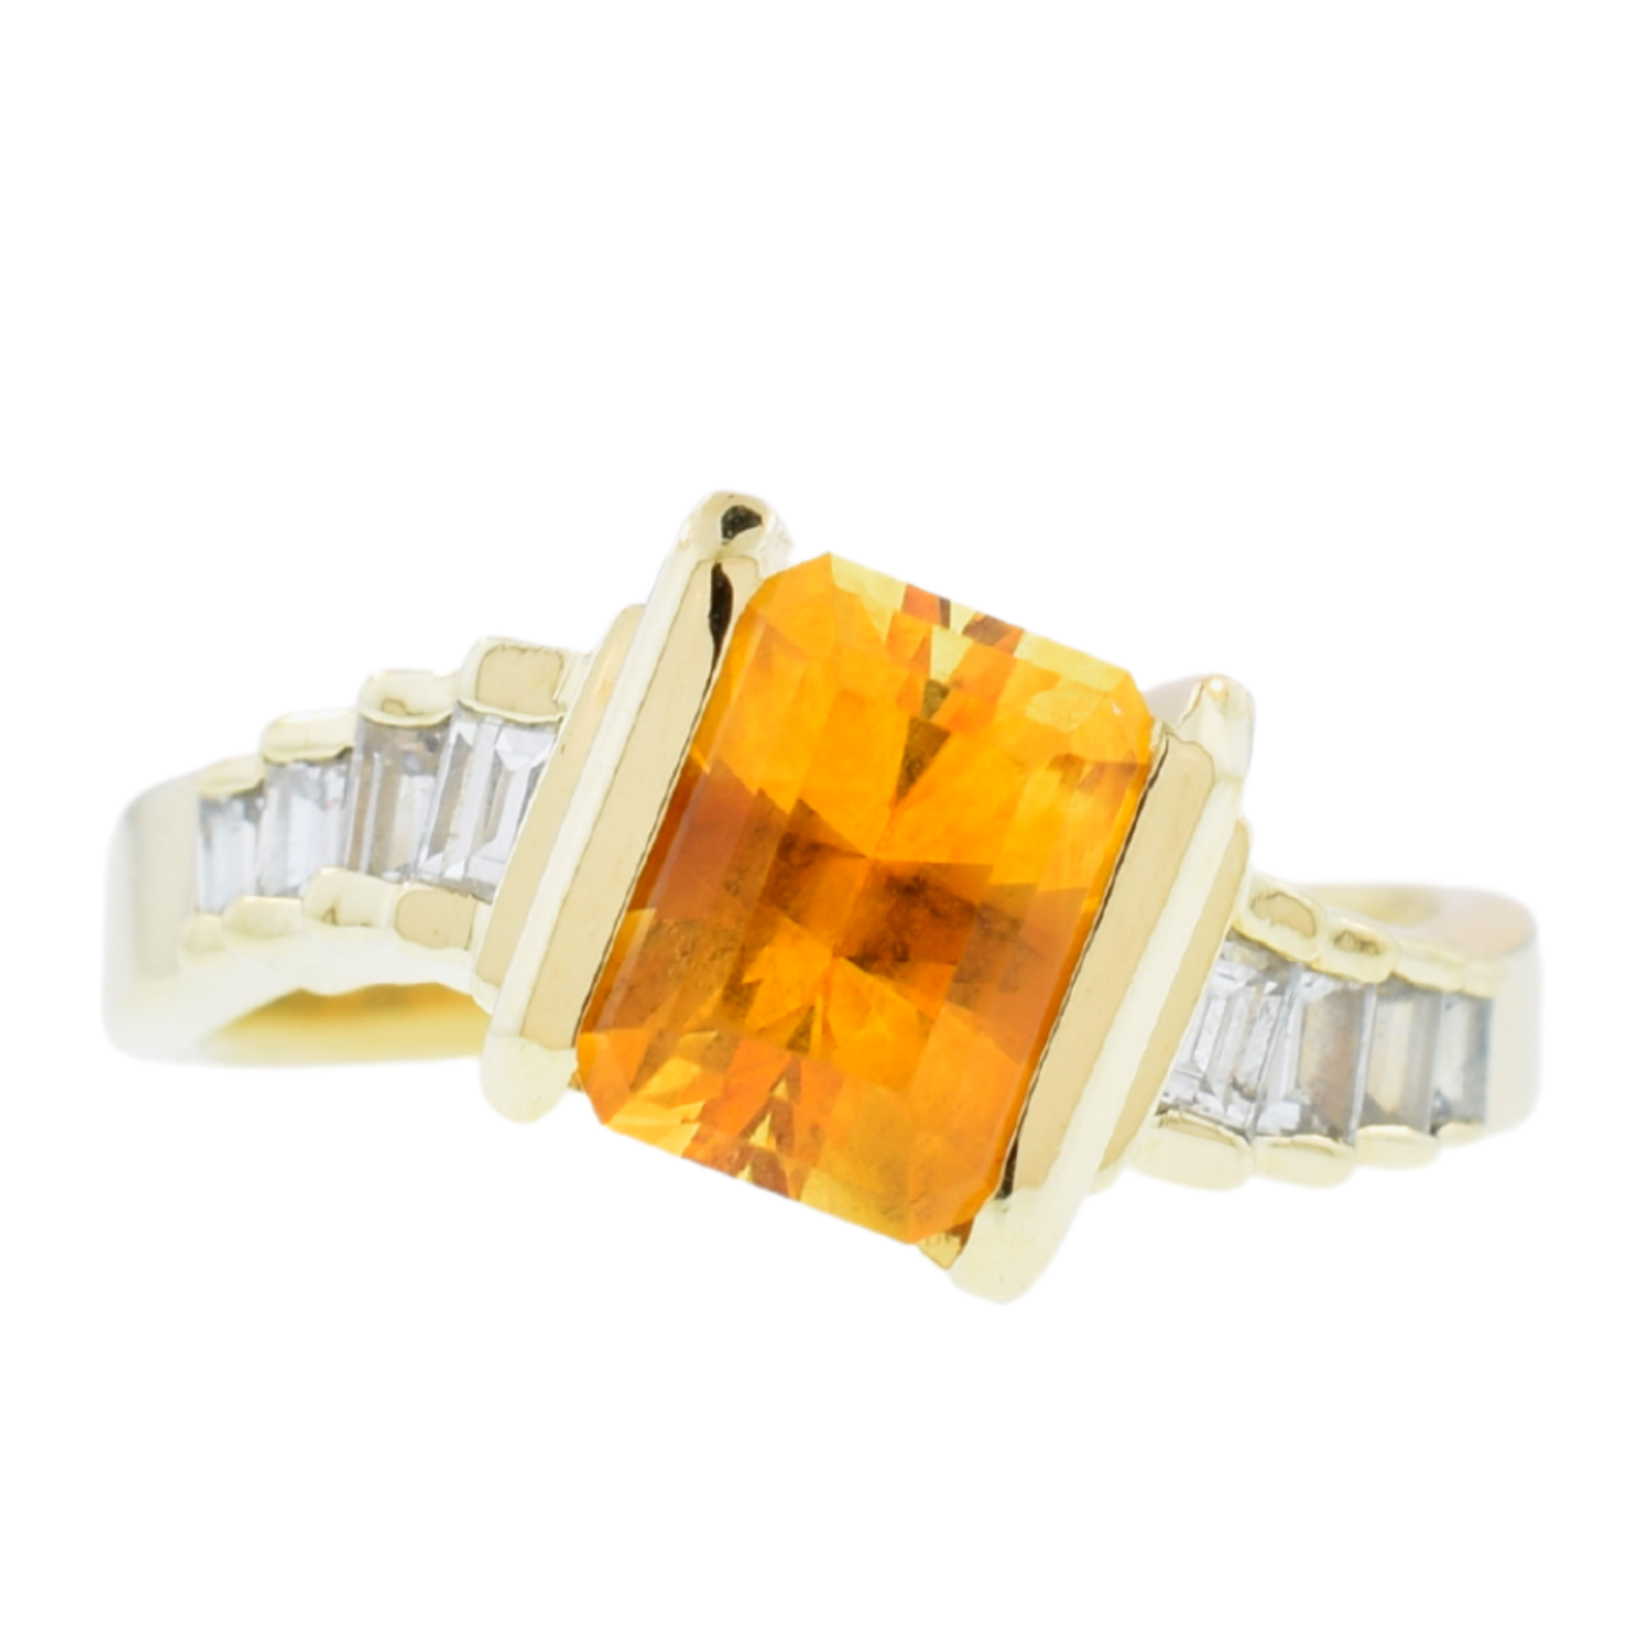 Estate/14kyg yellow stone with clr emerald cut side stones